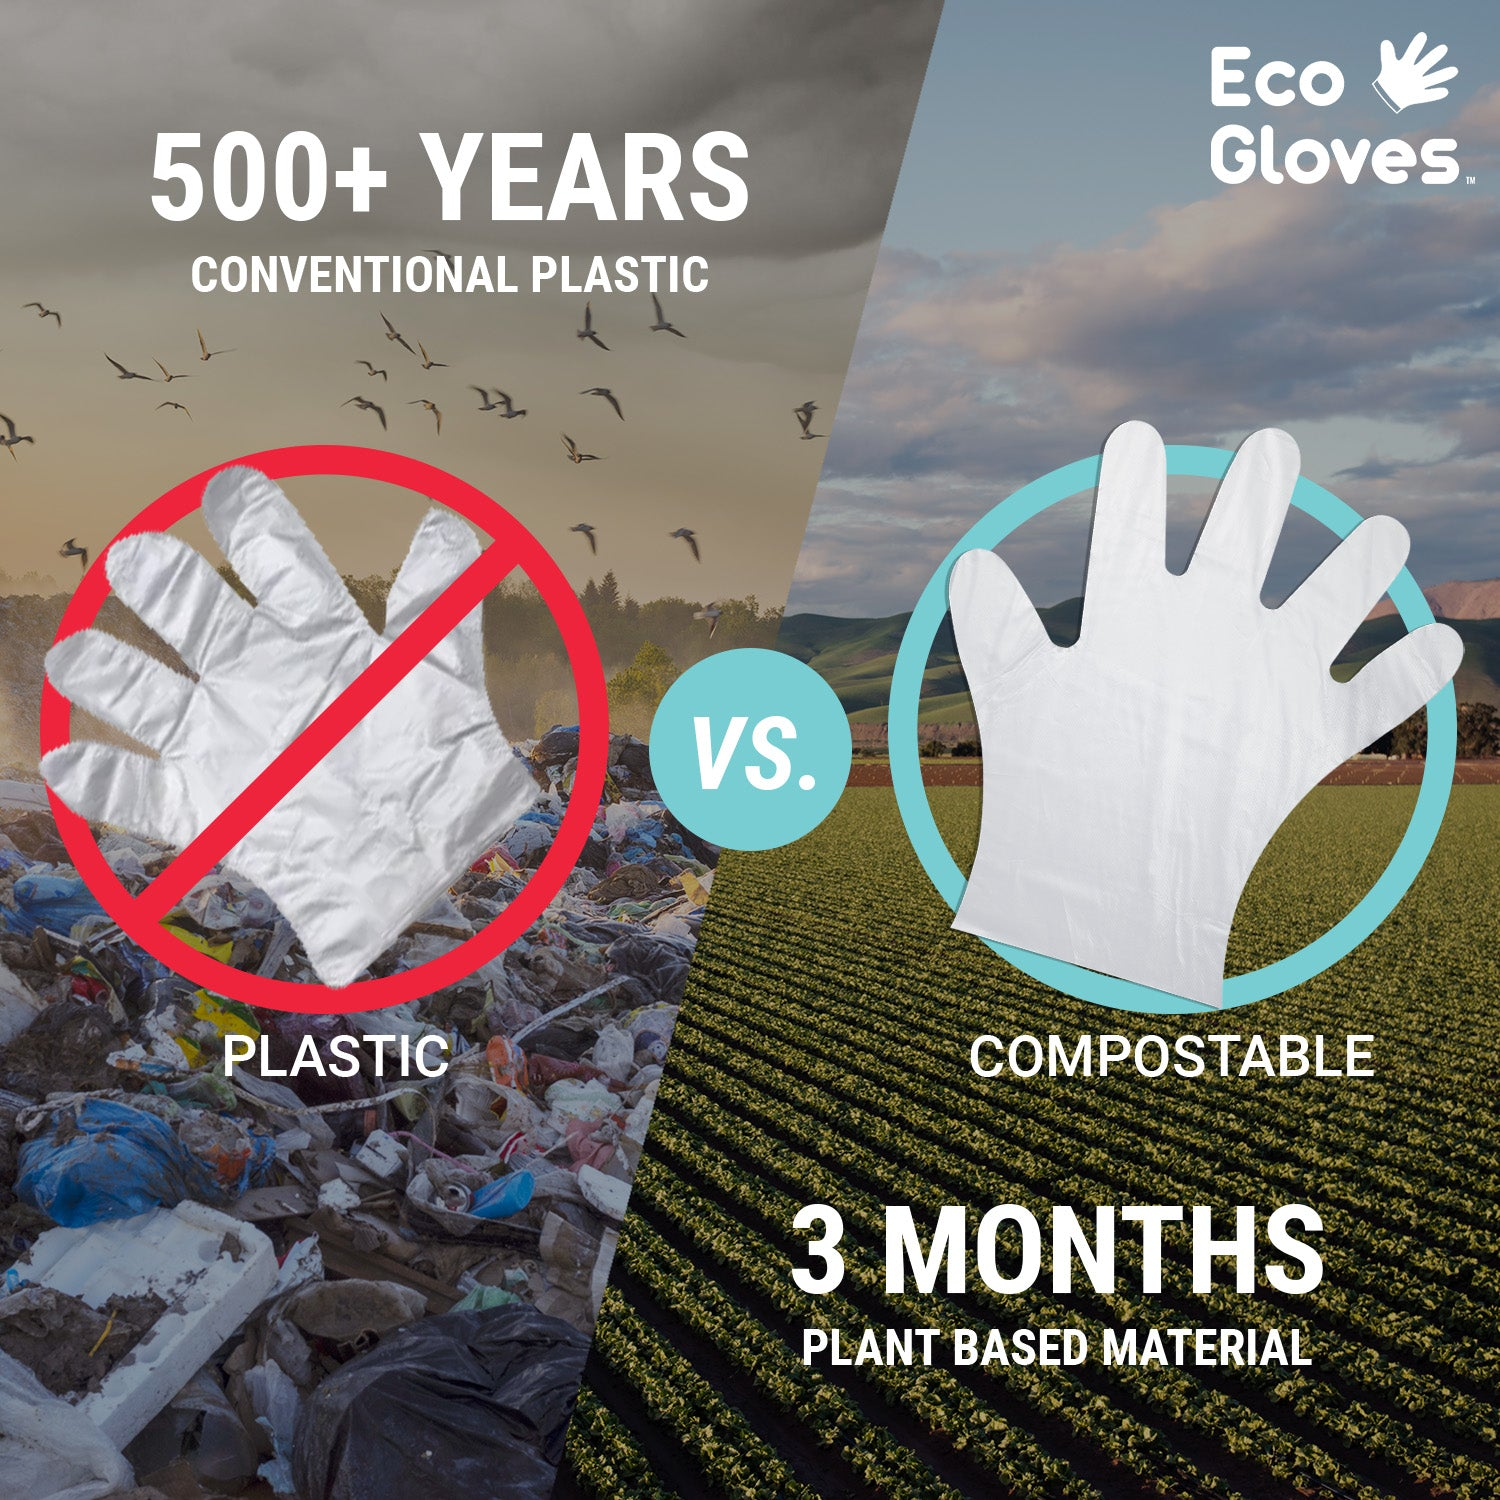 Are Disposable Gloves Biodegradable